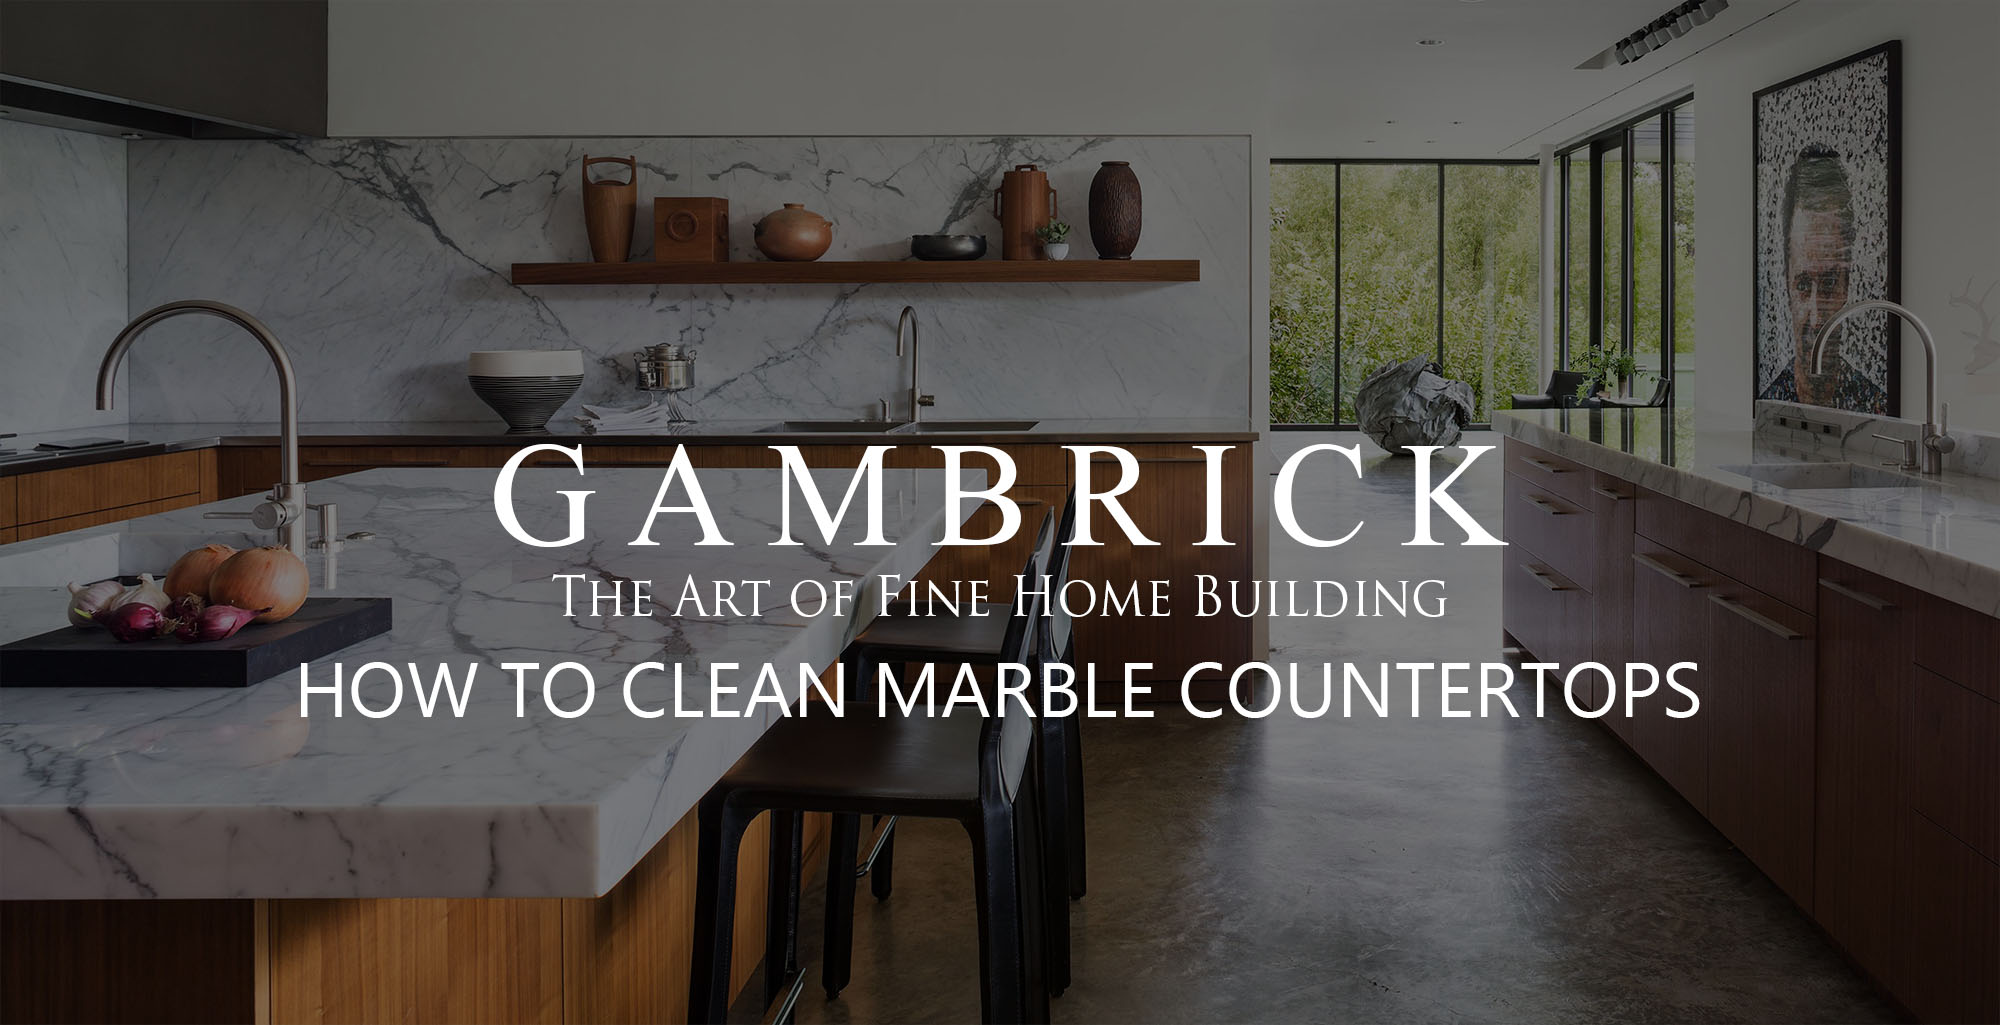 how to clean marble countertops banner - Gambrick